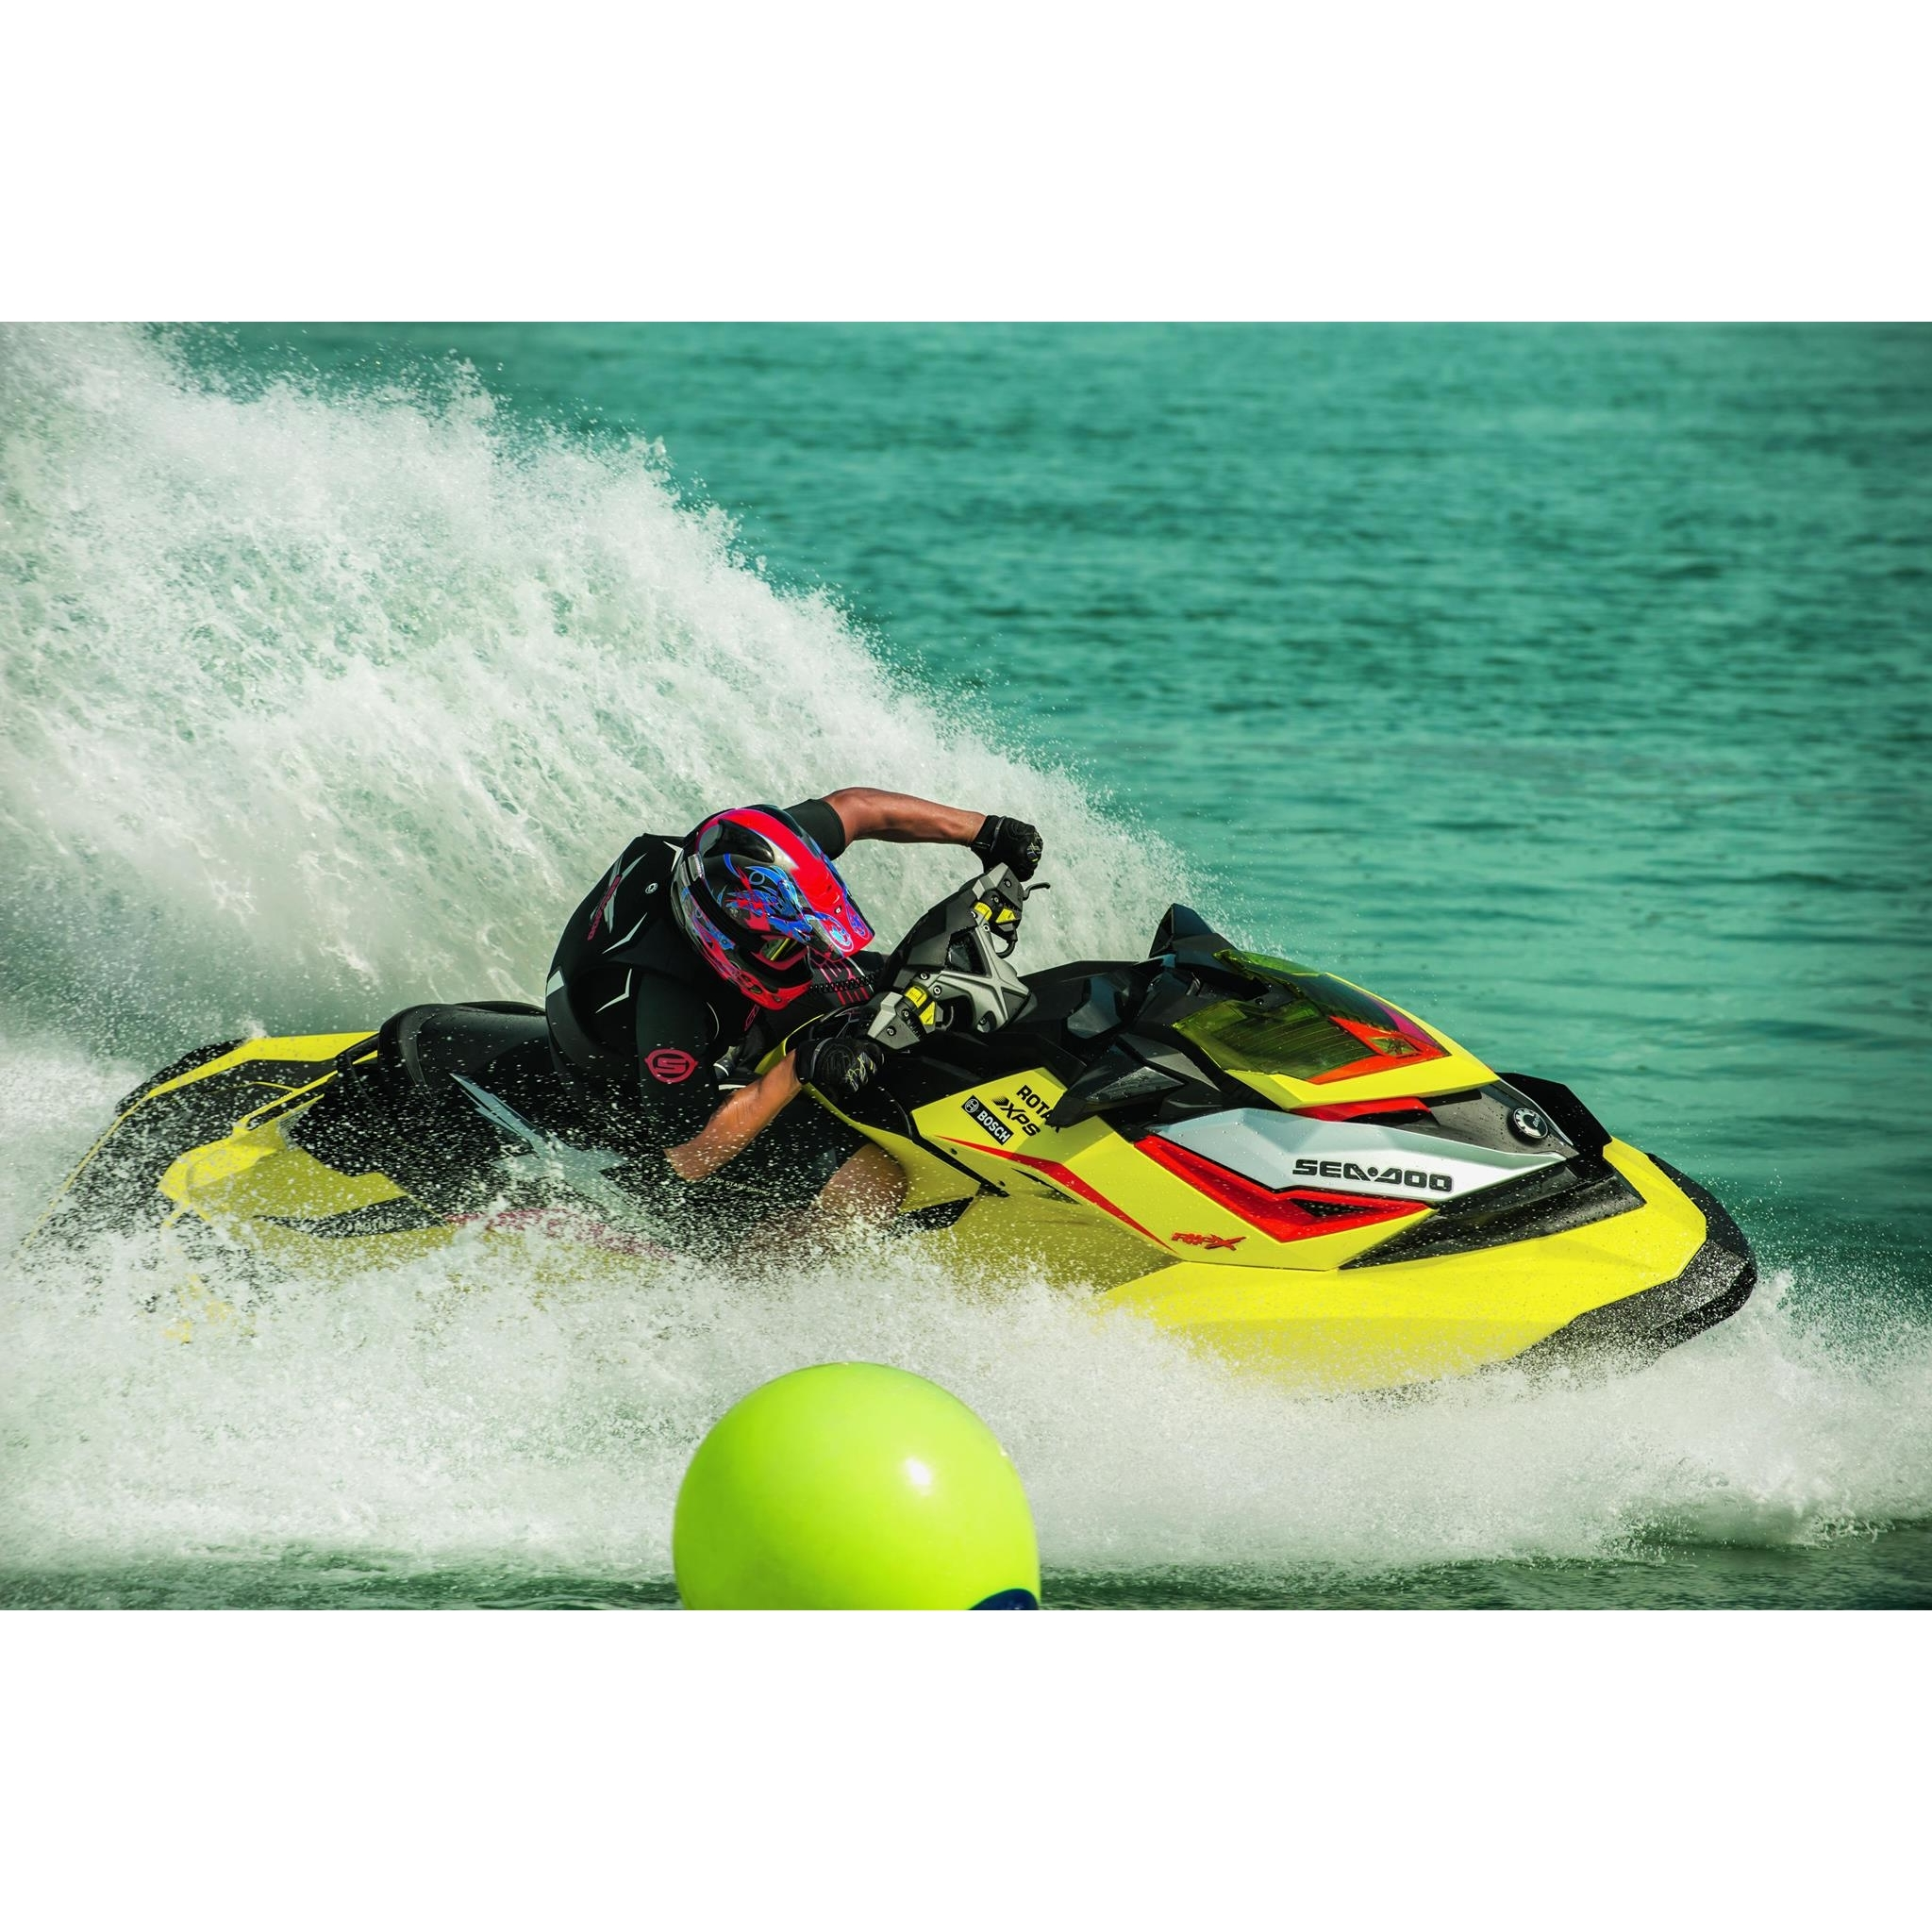 M m powersports marine coupons near me in 8coupons for Small outboard motor repair near me